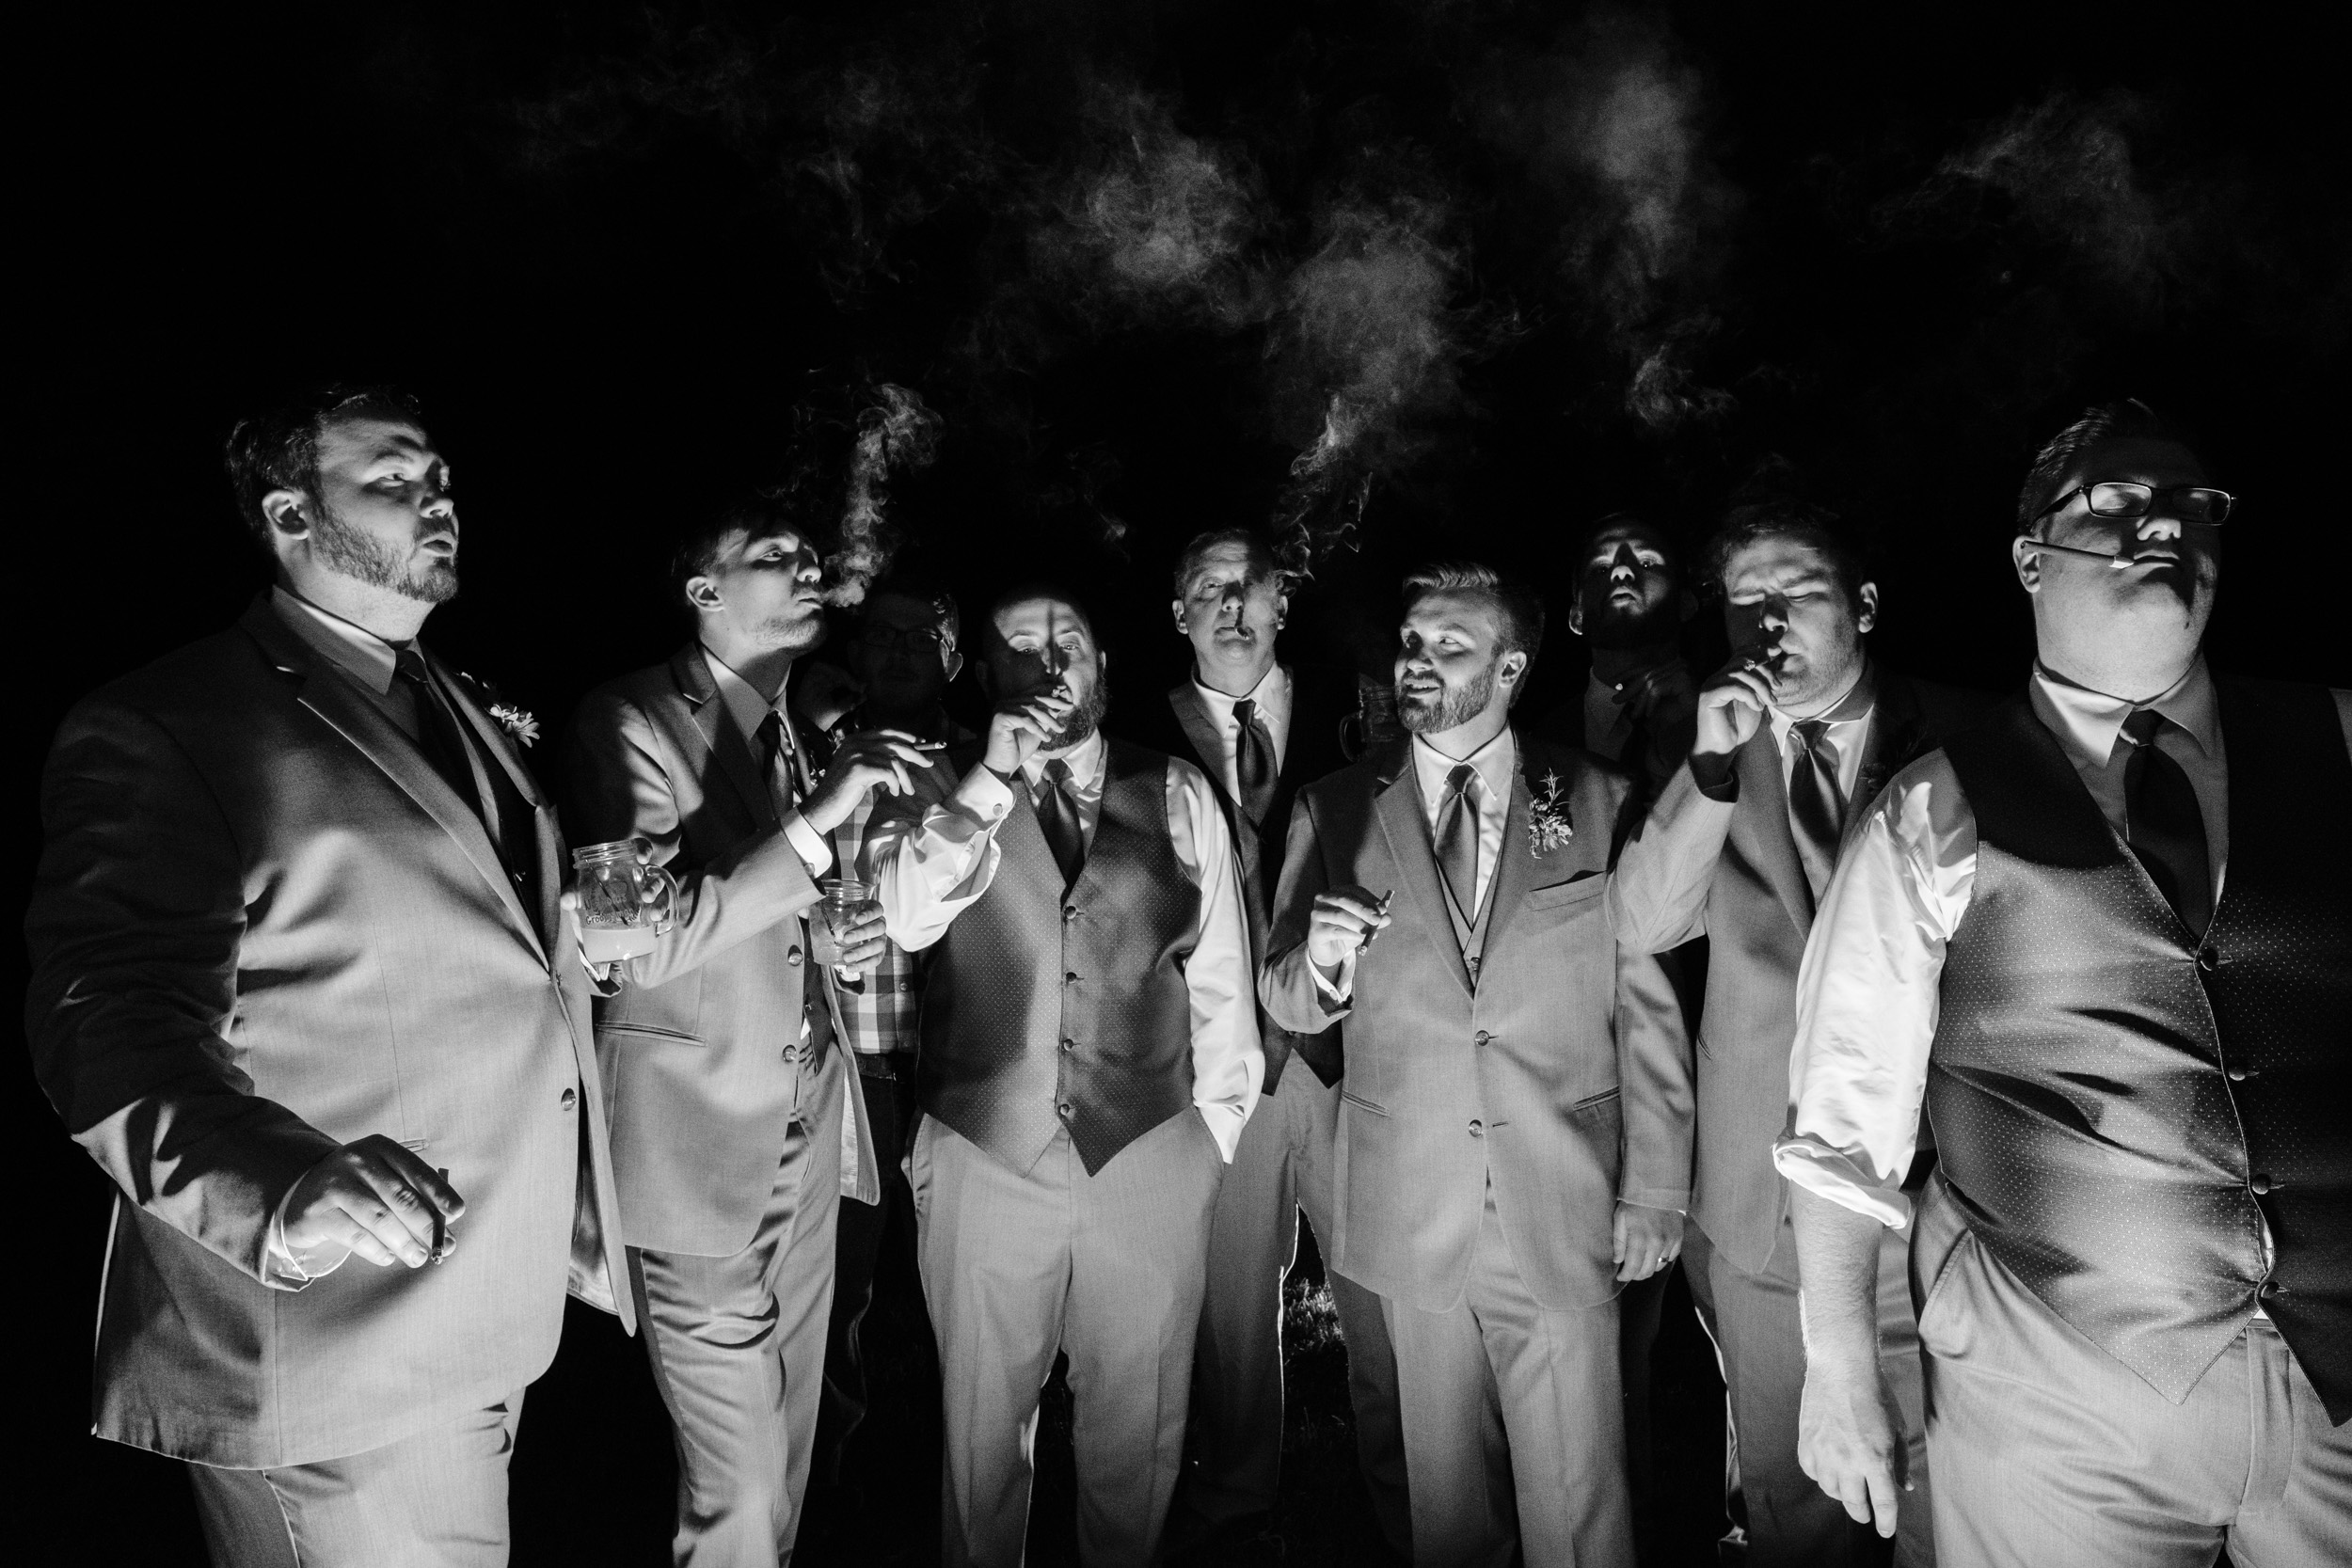 black and white photography with groomsmen and groom smoking cigars at the reception